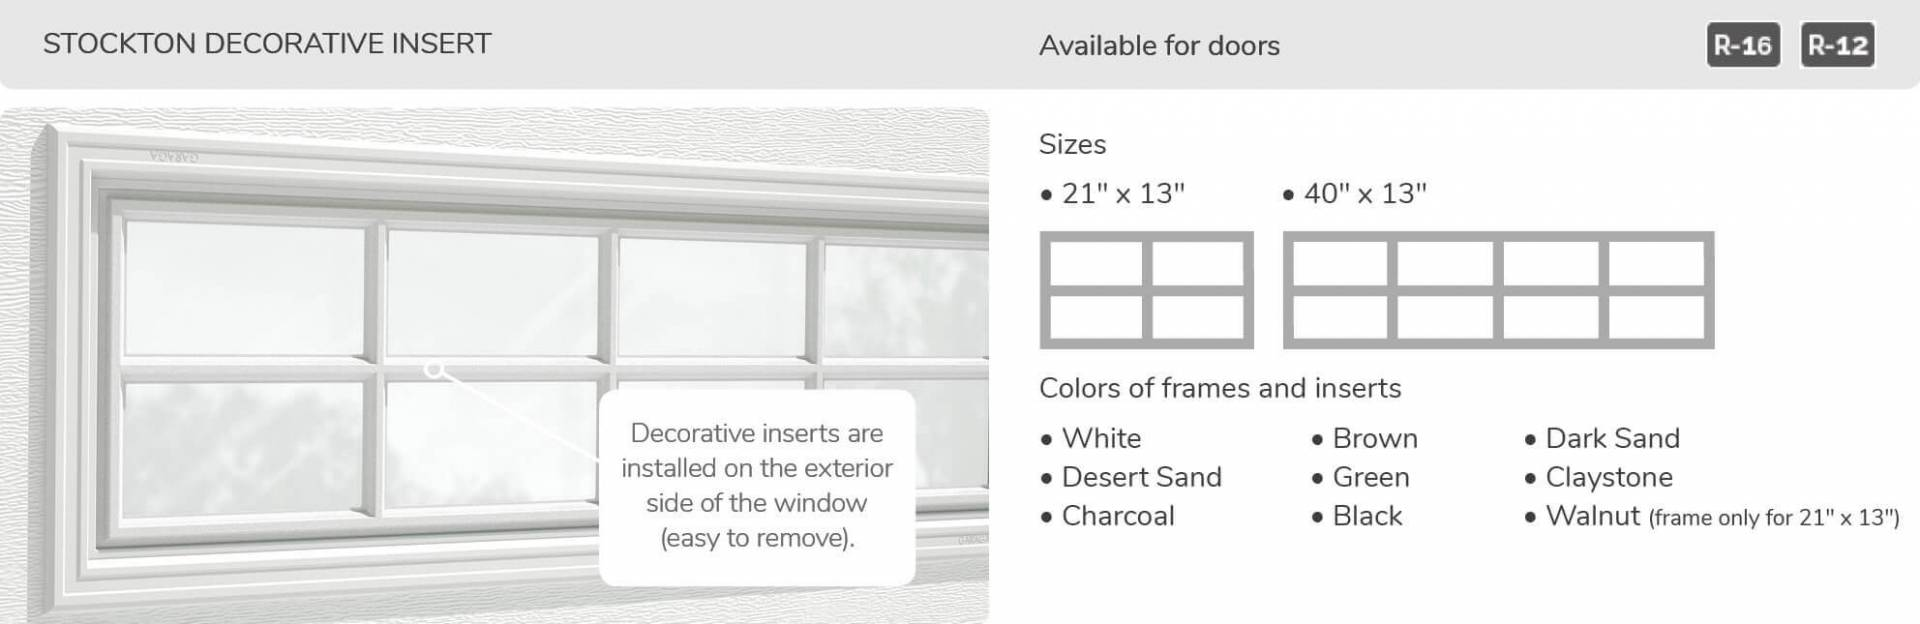 Stockton Decorative Insert, 21' x 13' and 40' x 13', available for doors R-16 and R-12